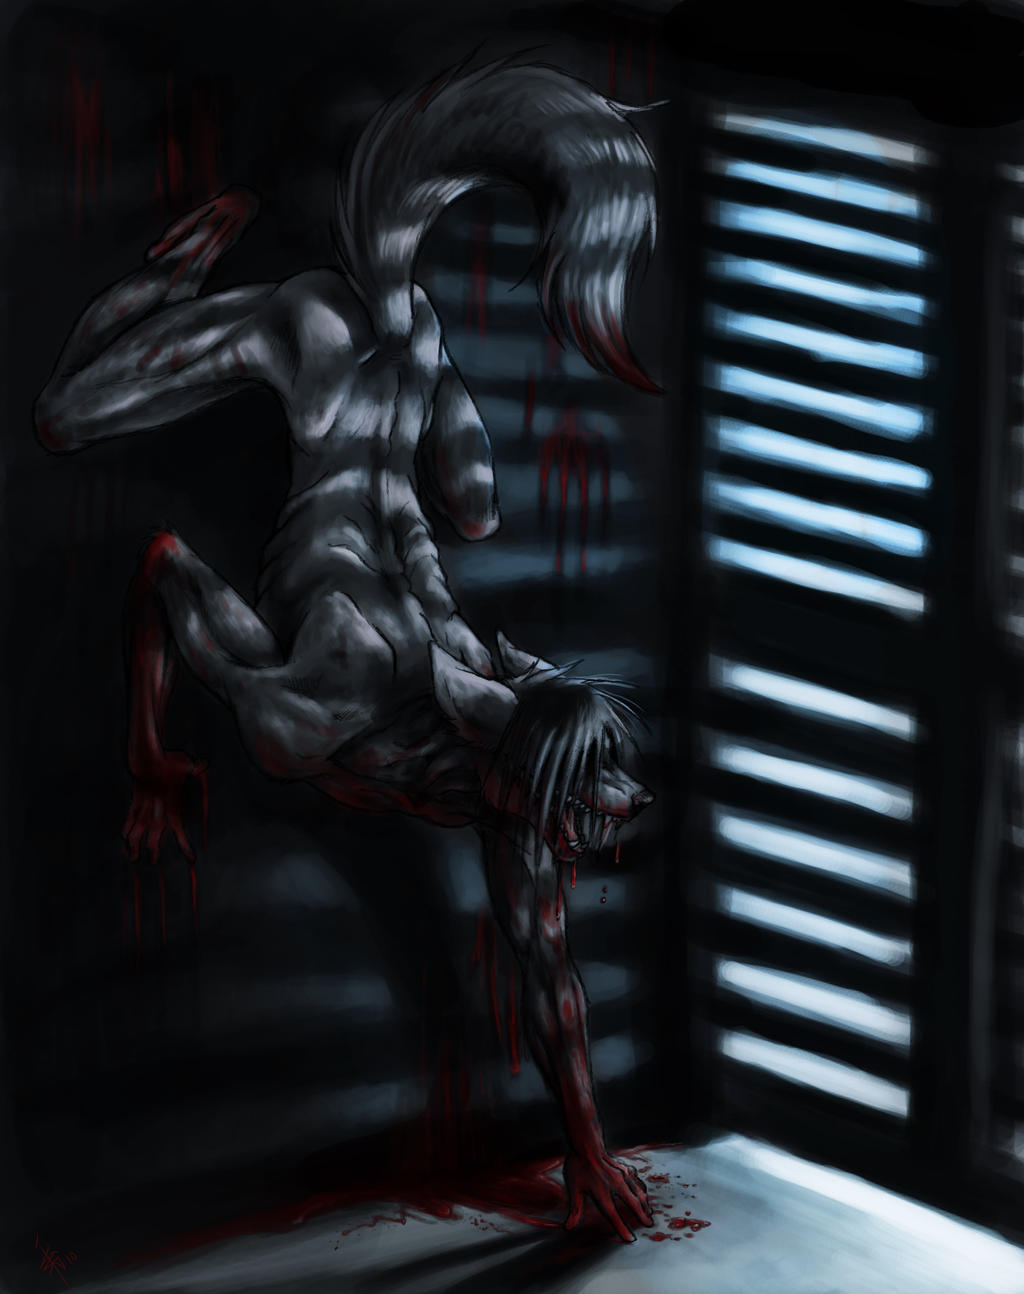 Bedroom Sleep Shop There Are No Closet Monsters By Oomizuao On Deviantart